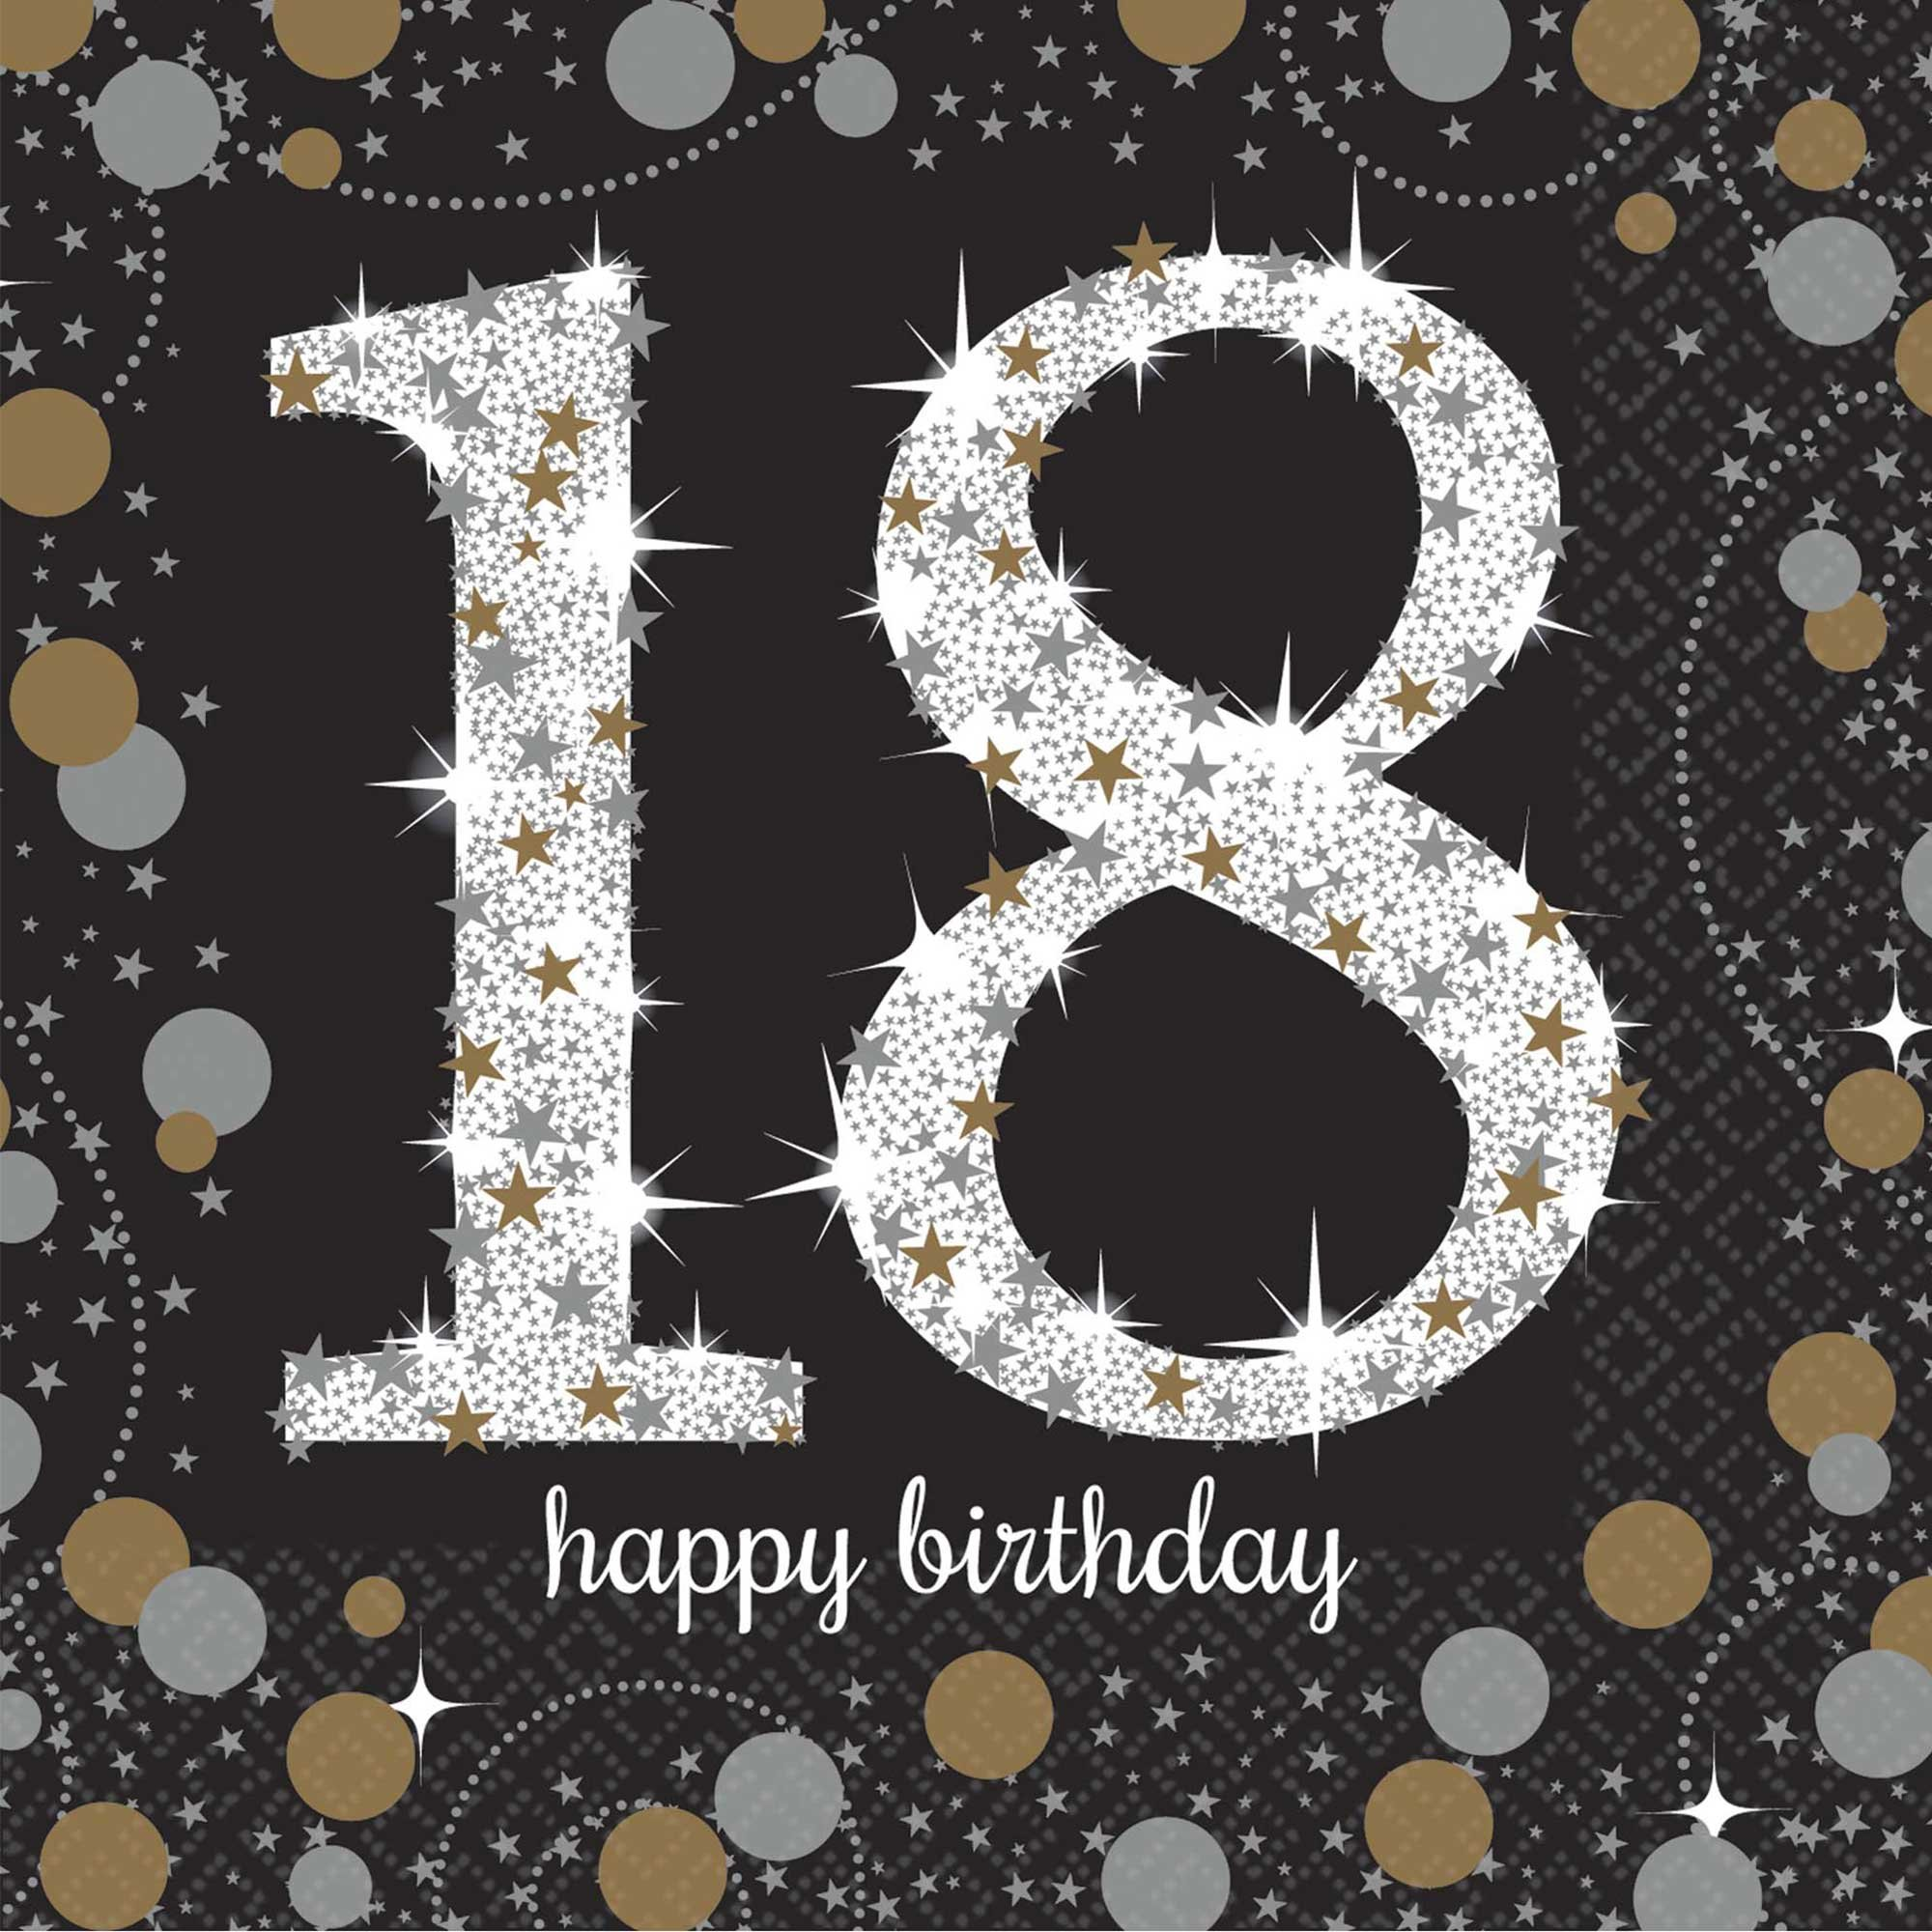 18TH BIRTHDAY NAPKINS - SPARKLING BLACK & GOLD - COCKTAIL PK 16